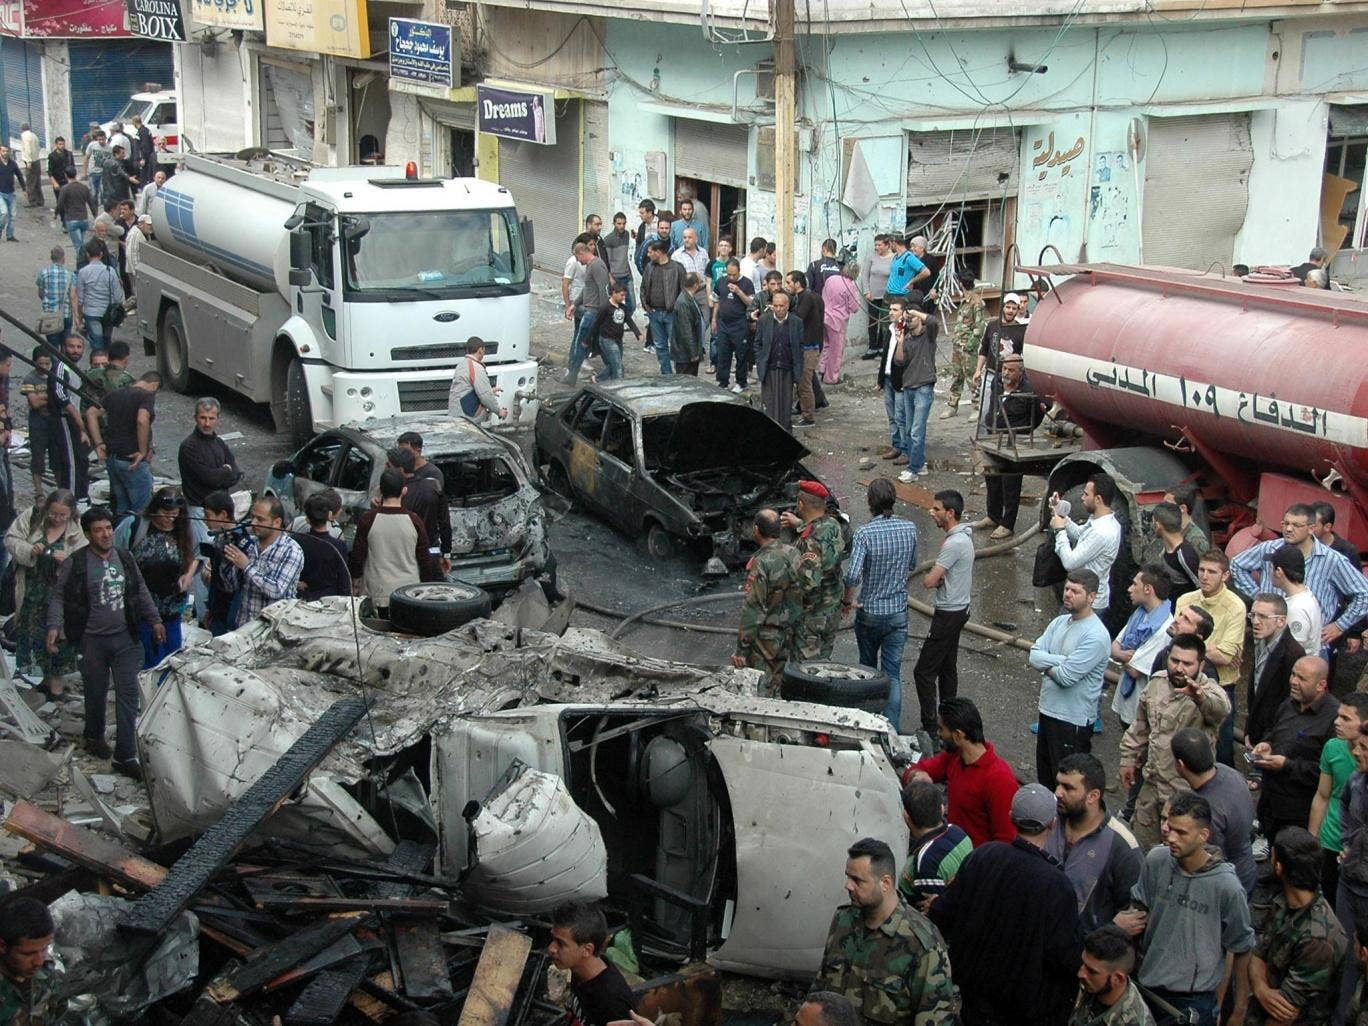 Security and emergency medical personnel work at the site of a car bomb explosion in al-Ushaq street in Ekremah neighboorhood in Syrias central city of Homs